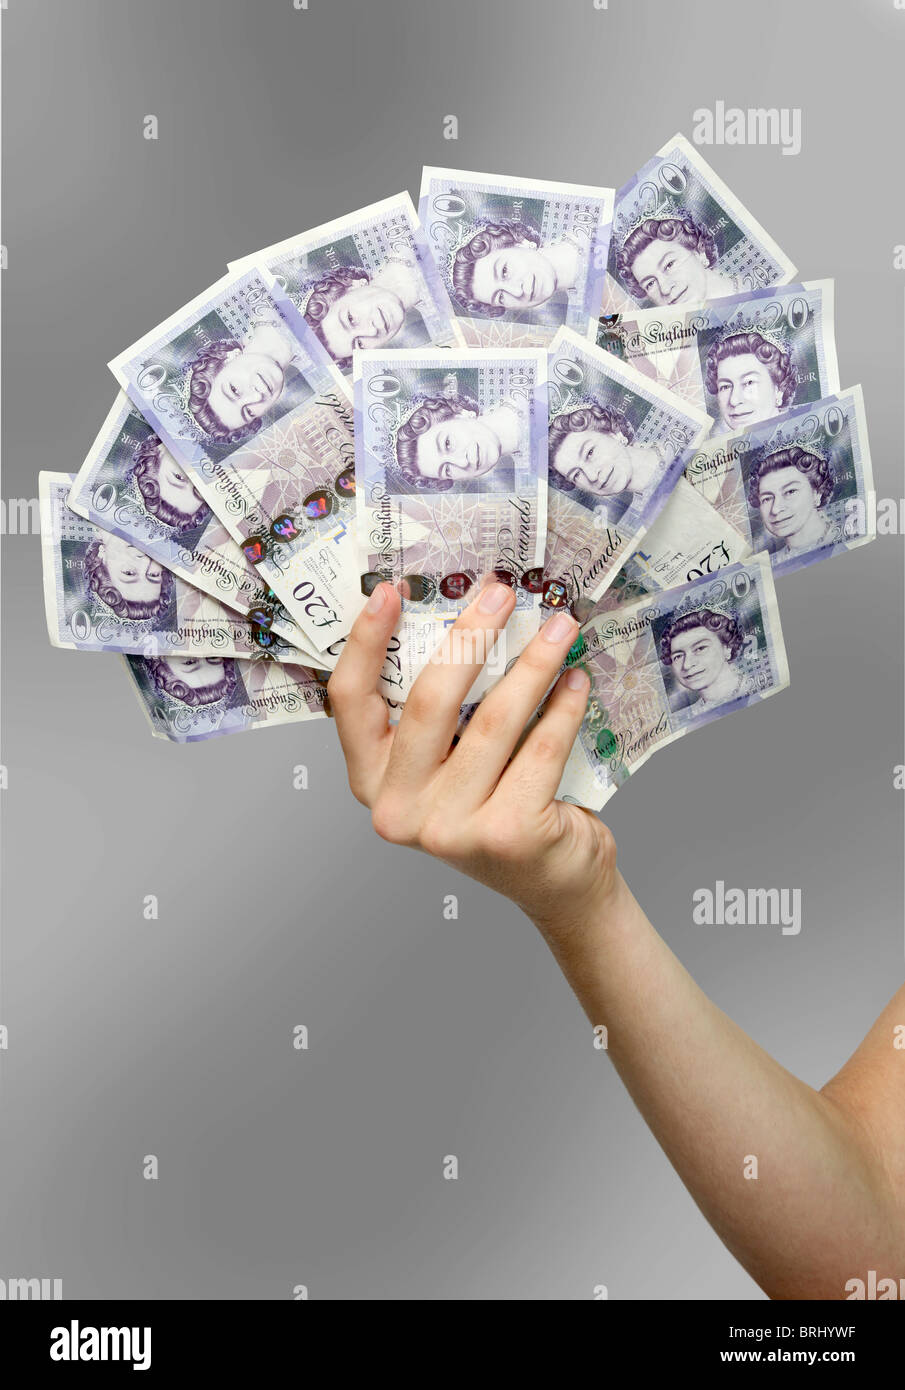 British £20 notes being held by male hand - Stock Image